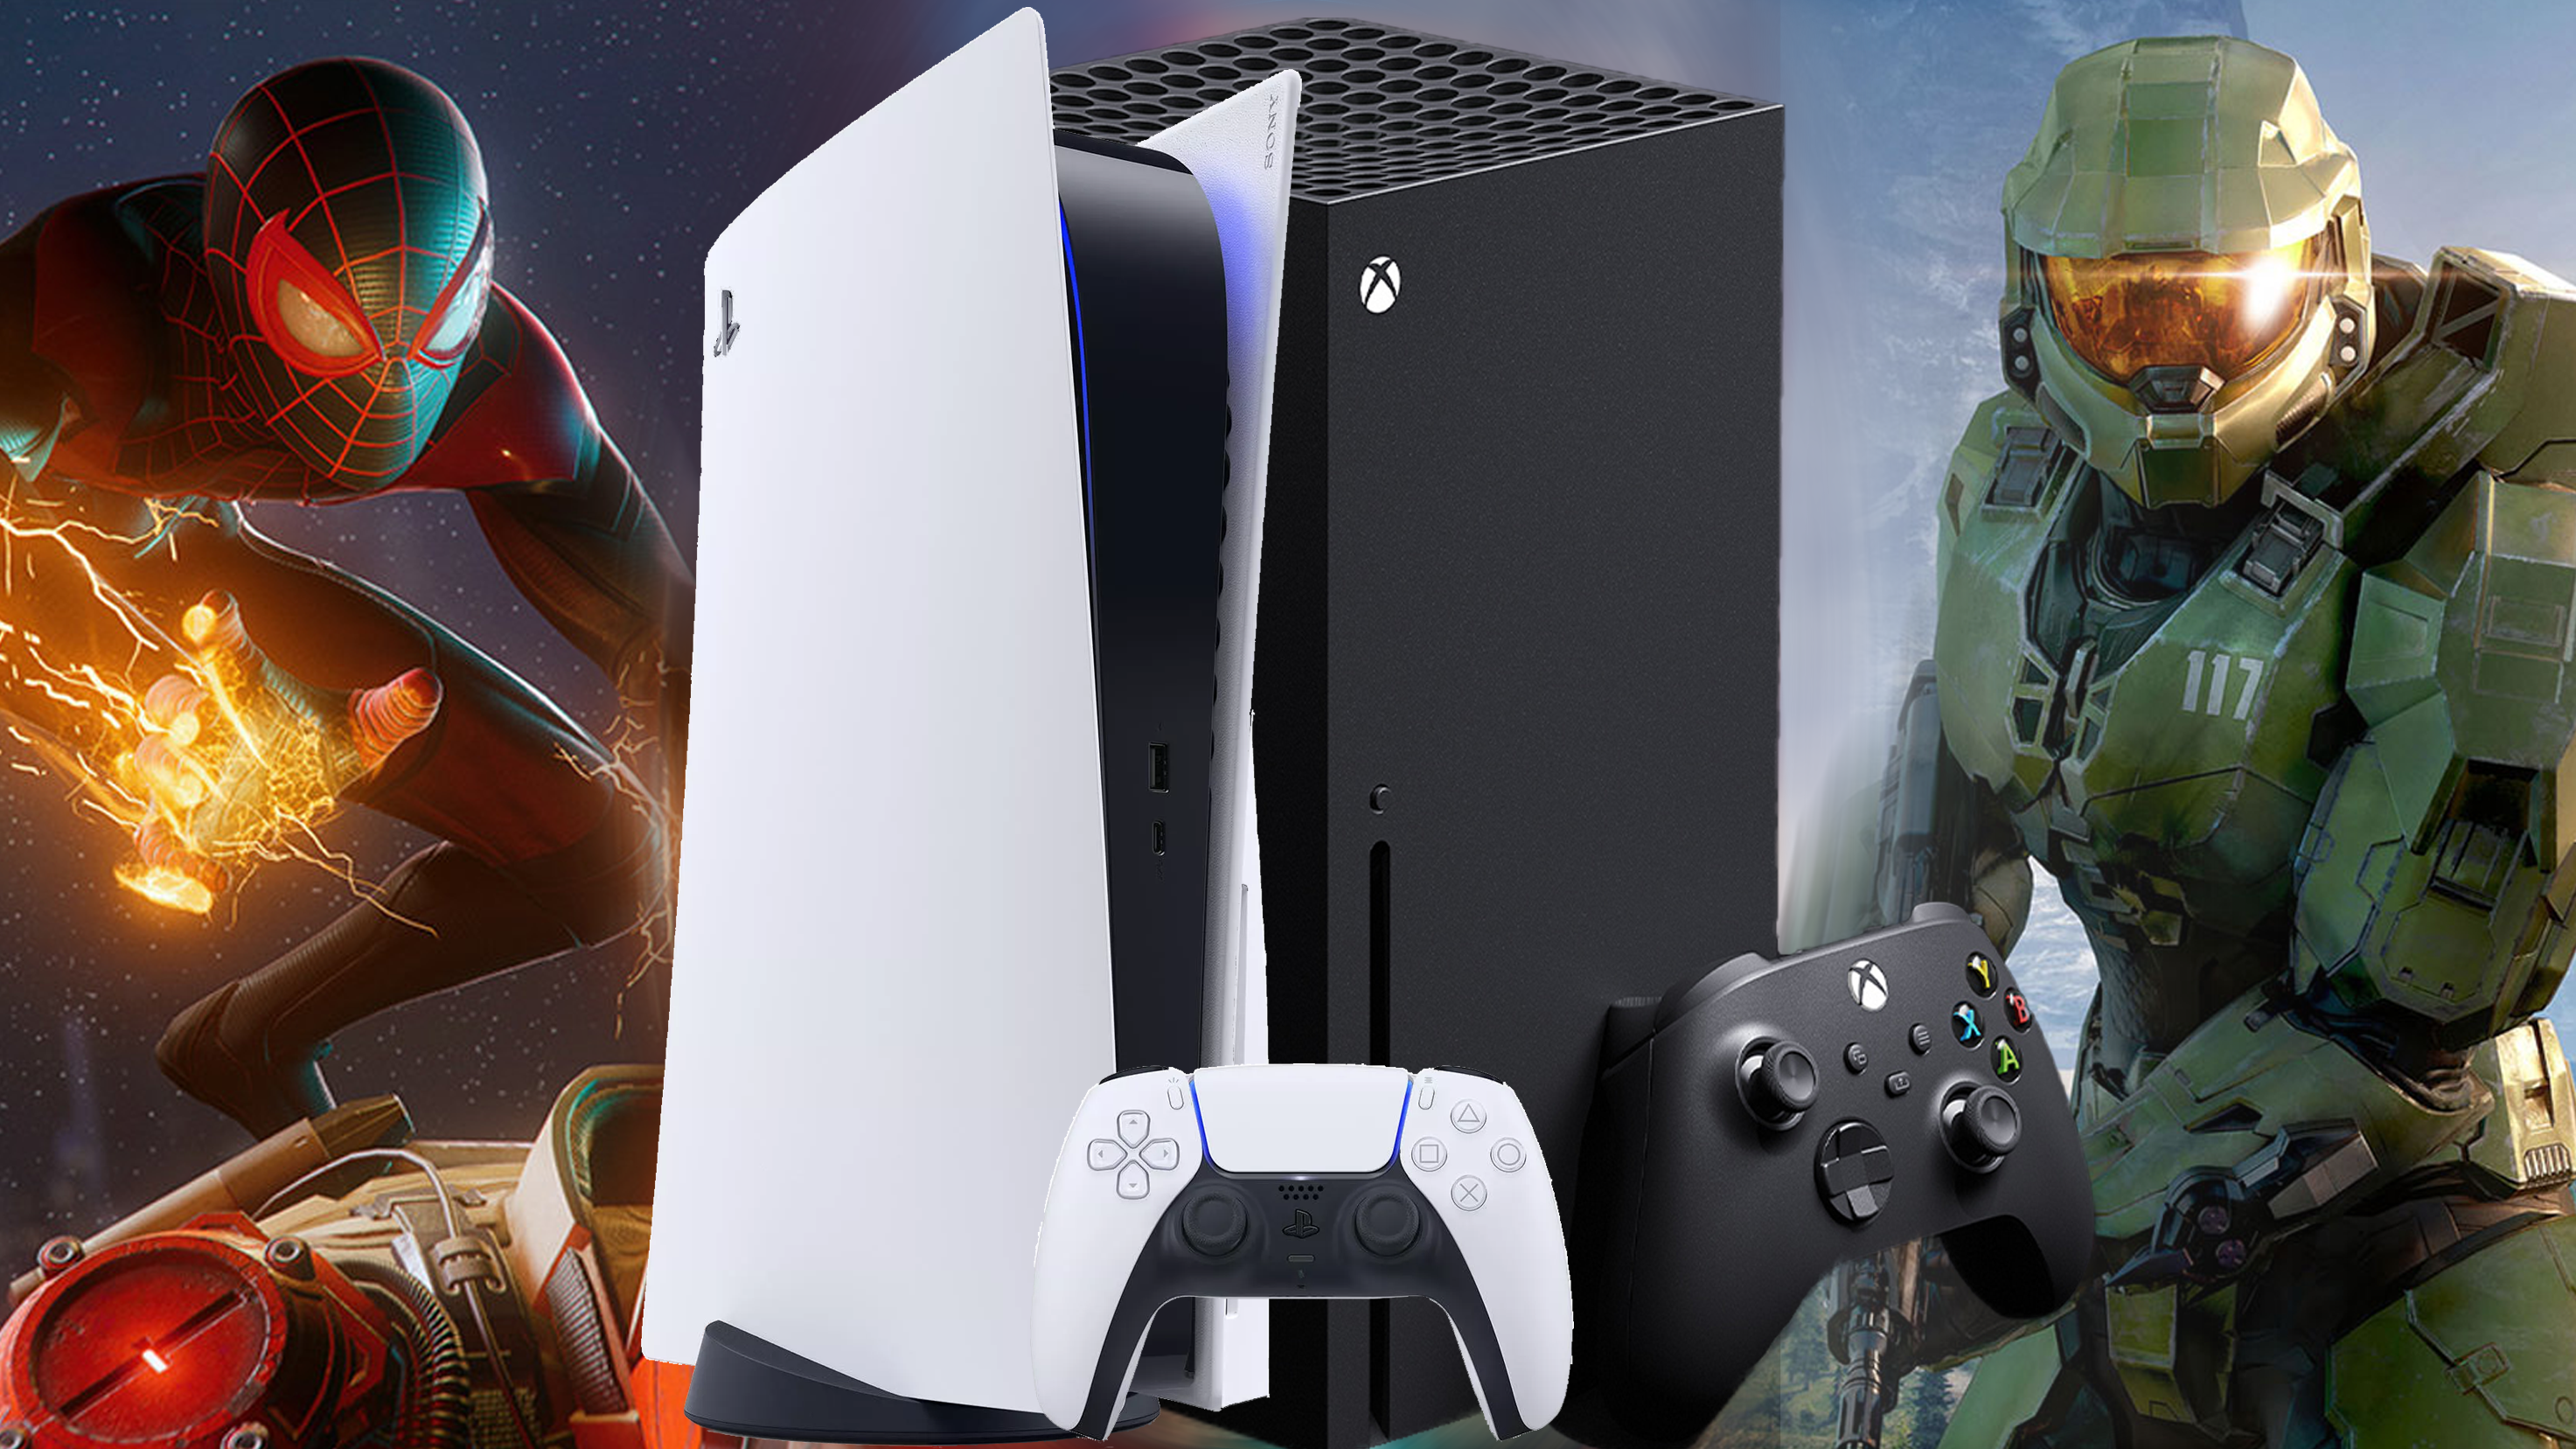 , Xbox Series X and Xbox Series S to be restocked at Walmart on March 25 – Source CNET Computer News, iBSC Technologies - learning management services, LMS, Wordpress, CMS, Moodle, IT, Email, Web Hosting, Cloud Server,Cloud Computing